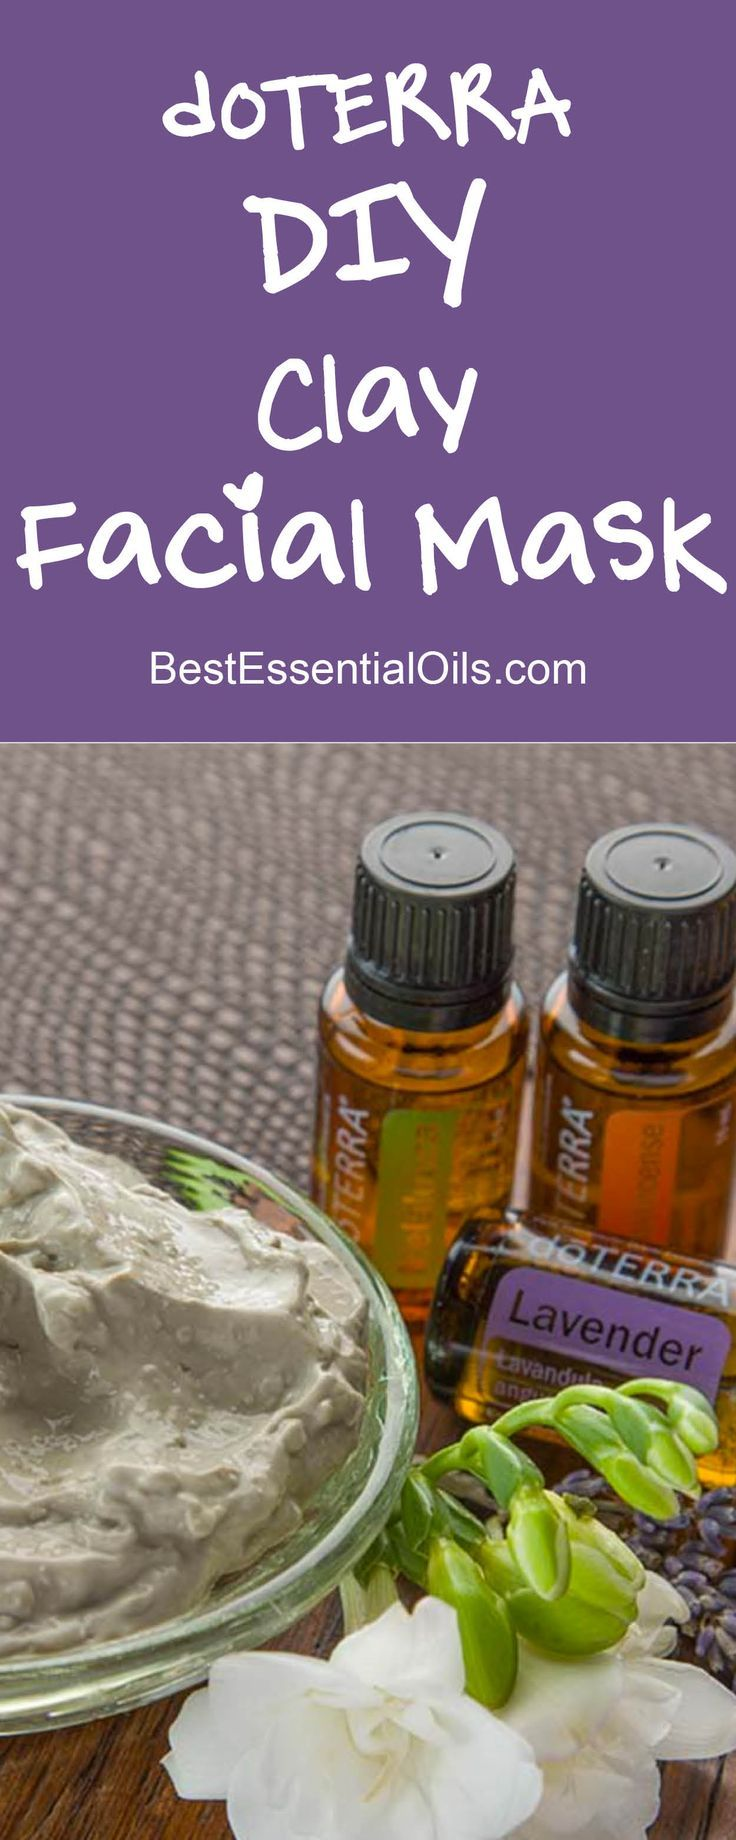 doTERRA Essential Oils DIY Clay Facial Mask Recipe